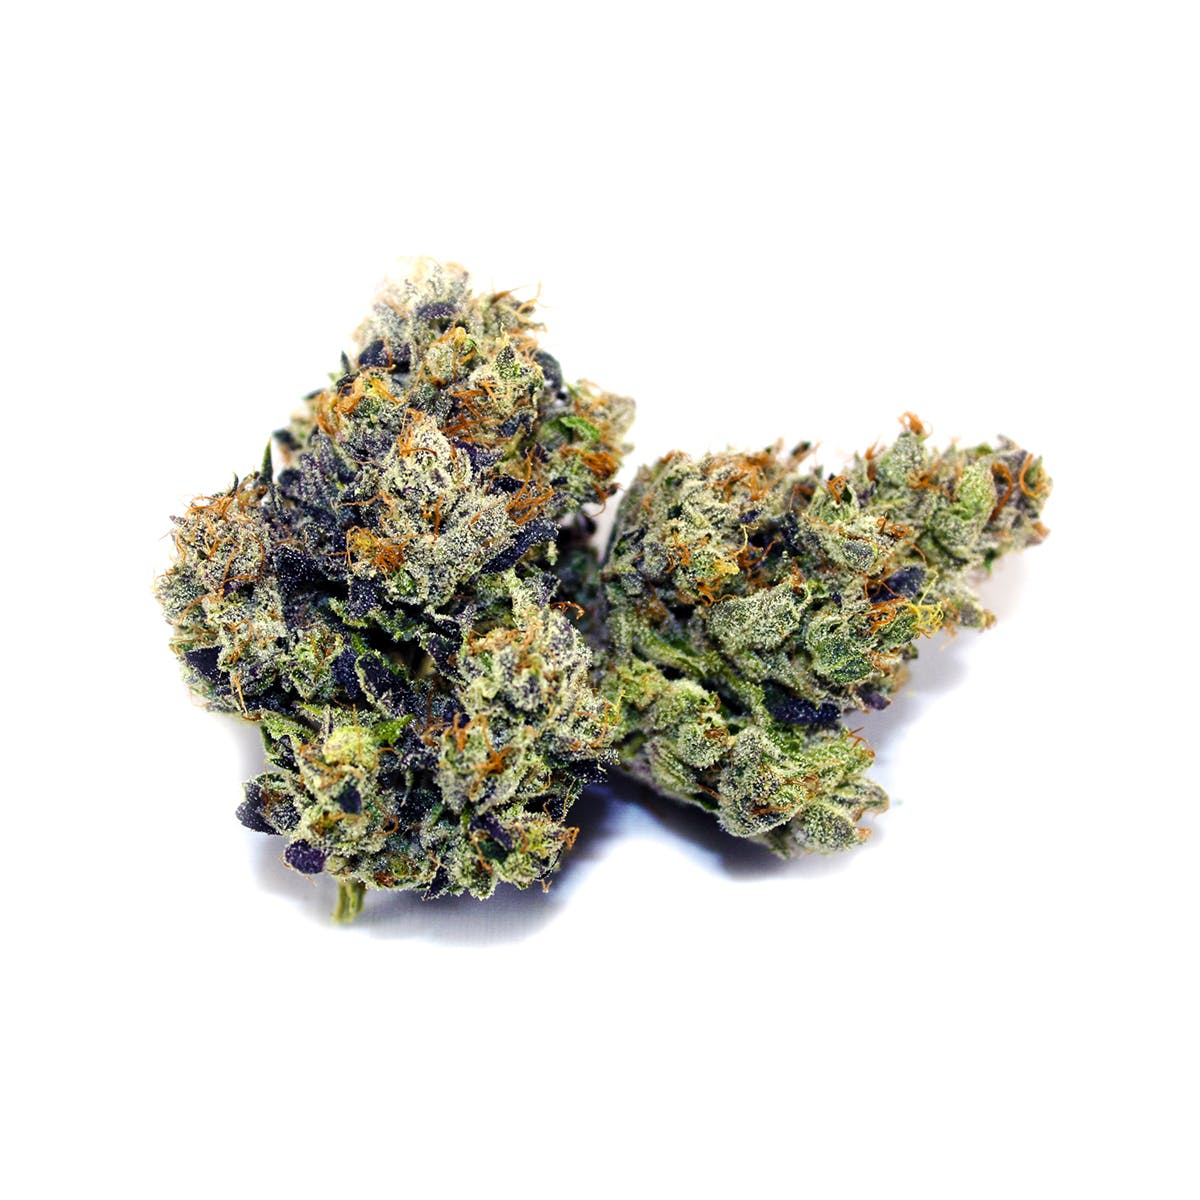 marijuana-dispensaries-bloom-medicinals-cannabis-dispensary-in-germantown-g6